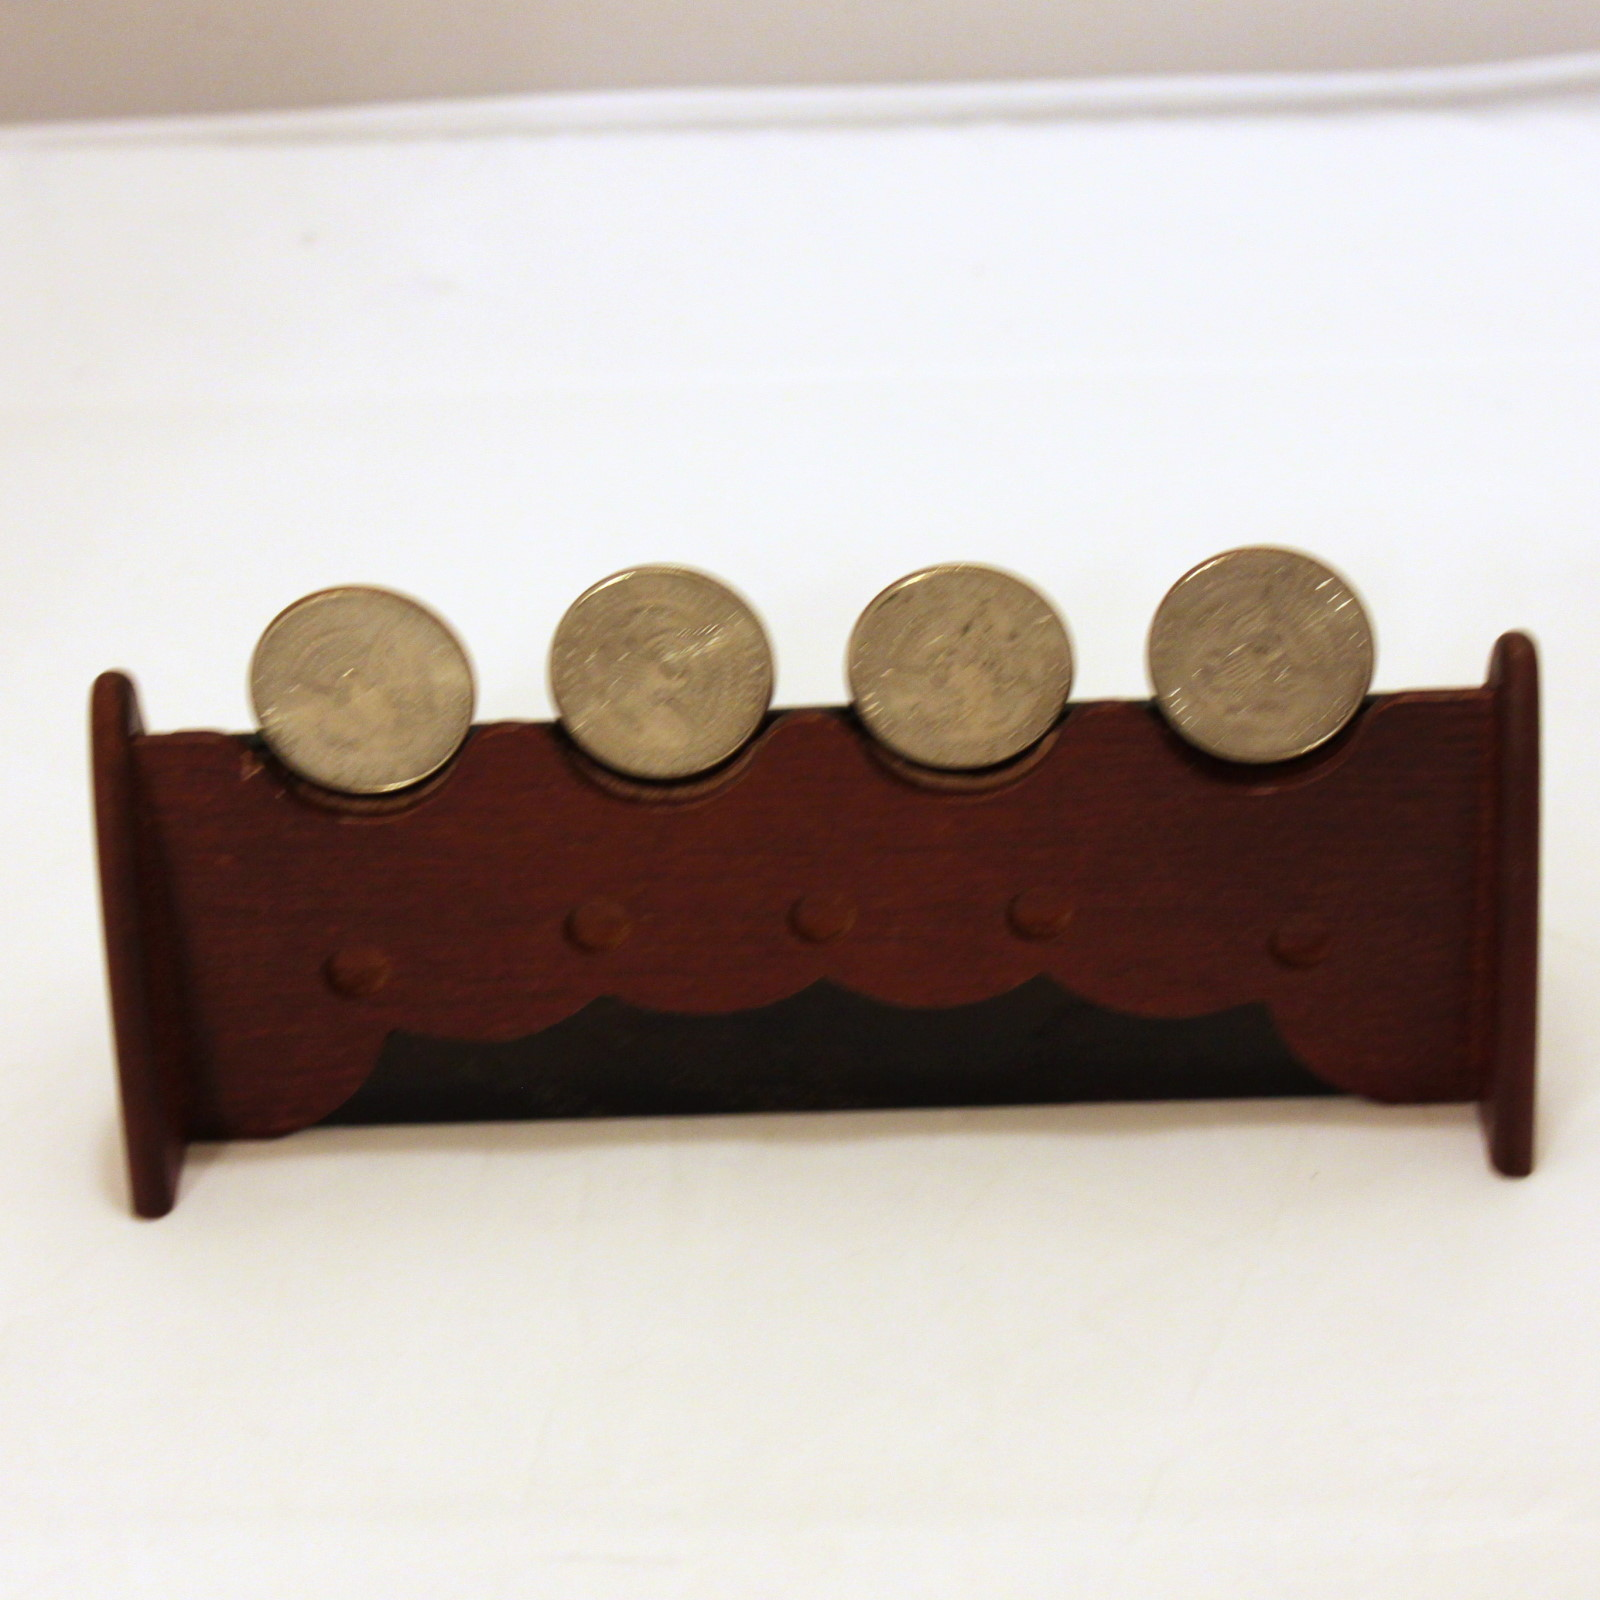 Coin Stand Deluxe by Mikame Craft